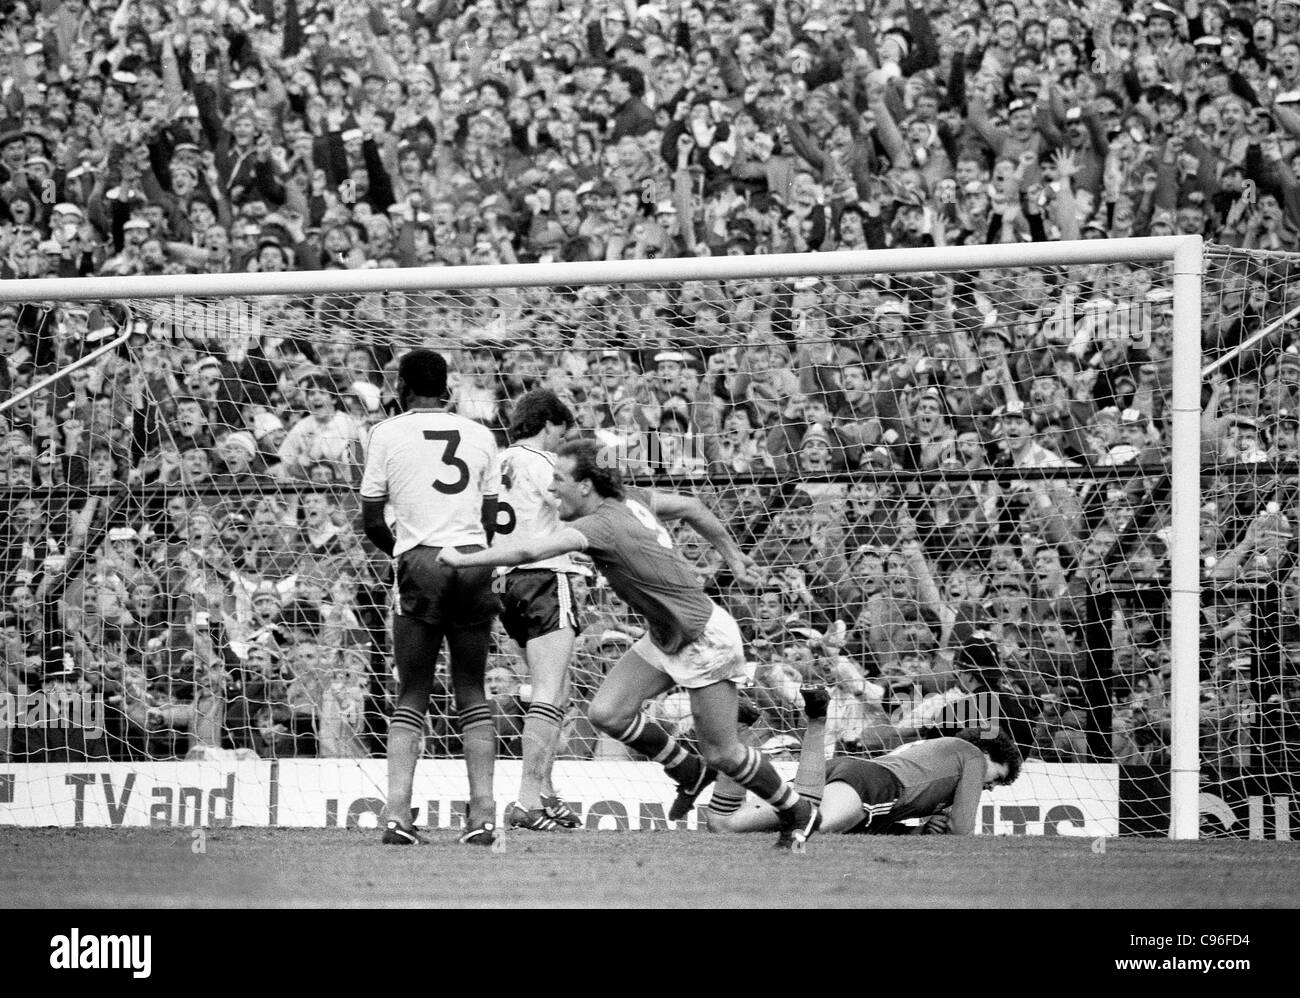 Everton V Luton Town FA Cup semi final at Villa Park 13/4/85 Andy Gray turns to celebrate Derek Mountfields winning - Stock Image